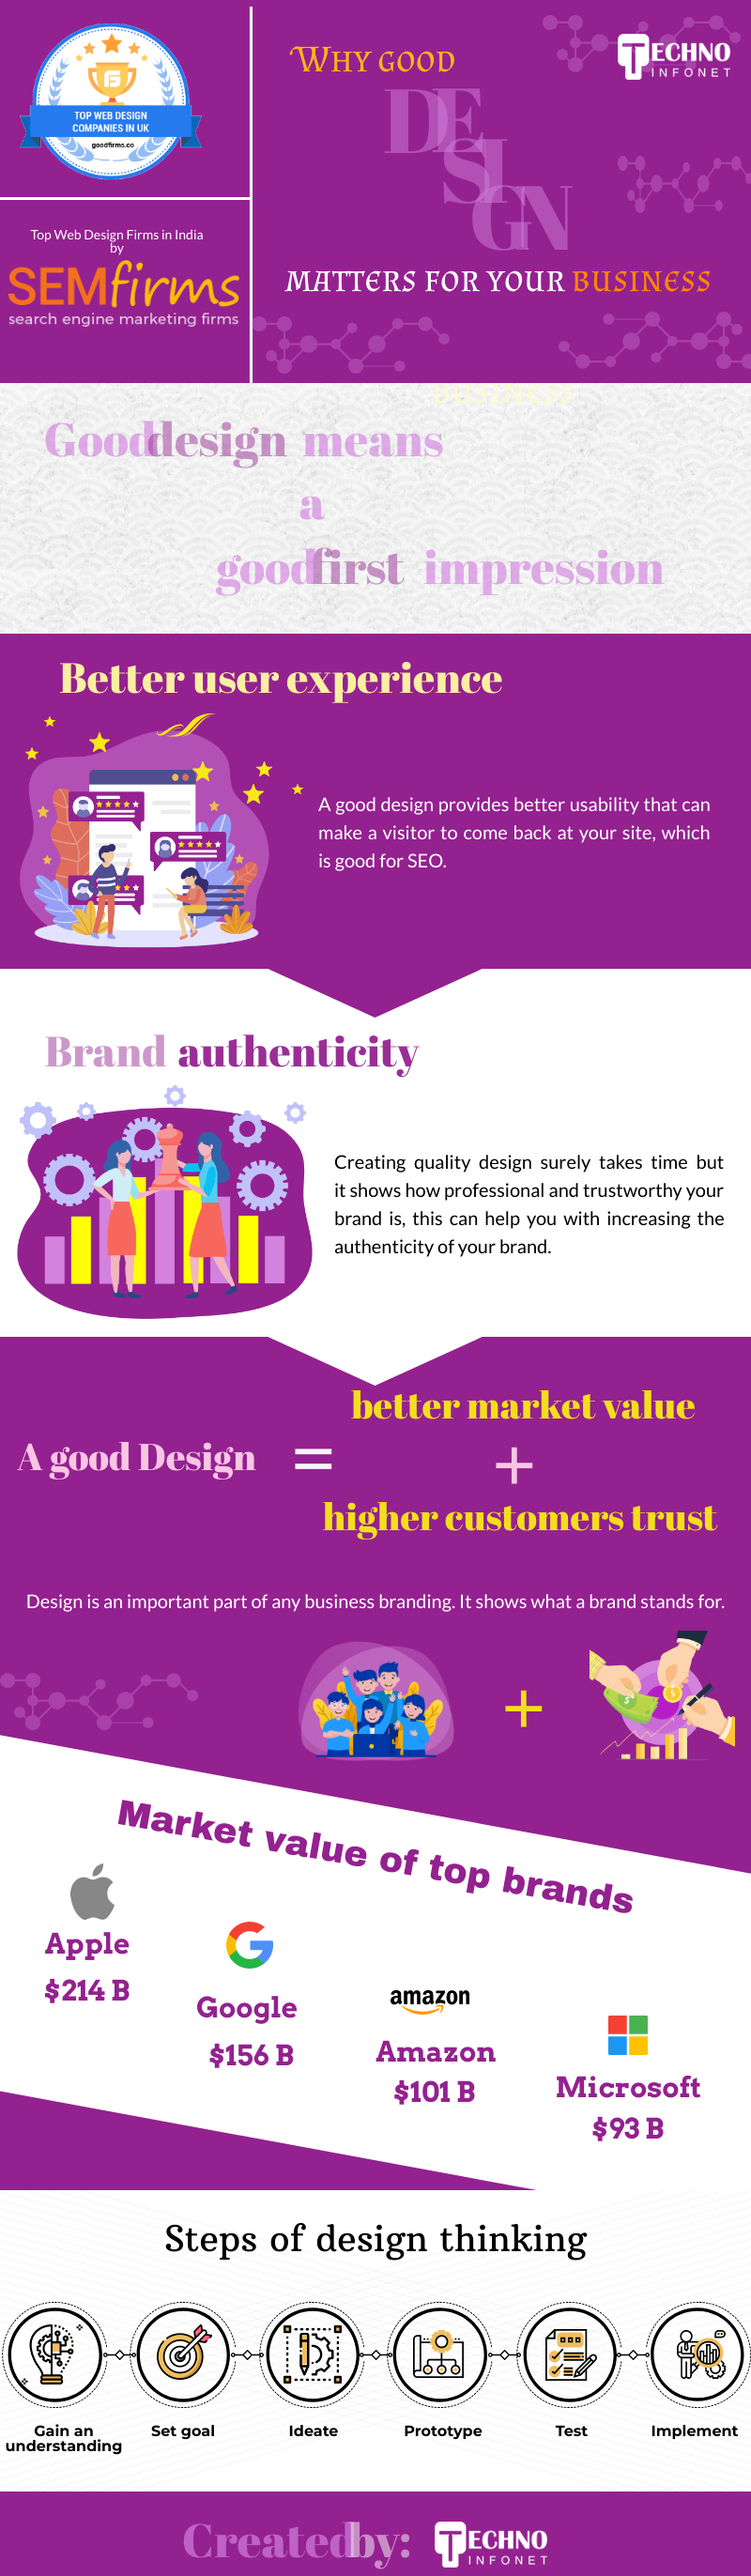 Why good design matters for your business